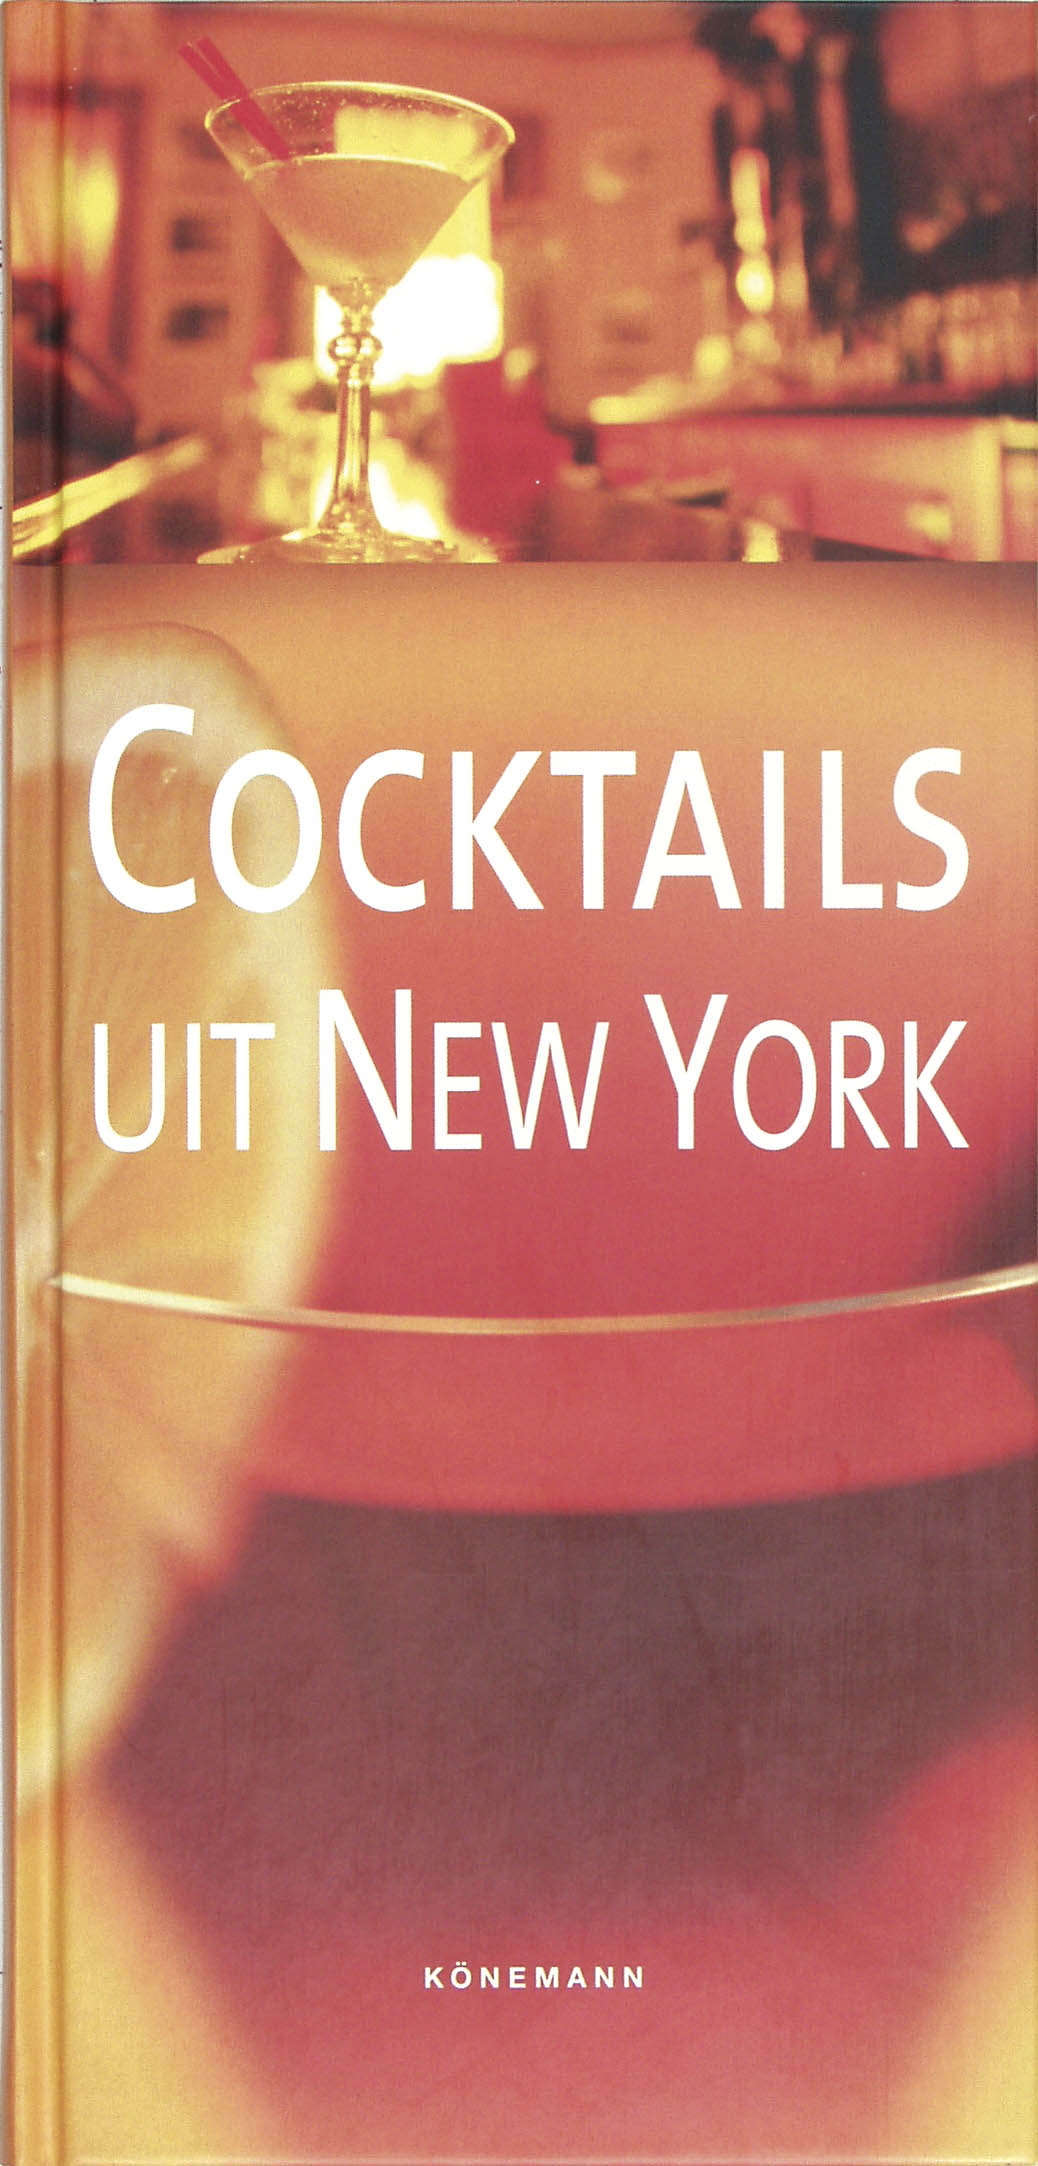 Cocktails uit New York